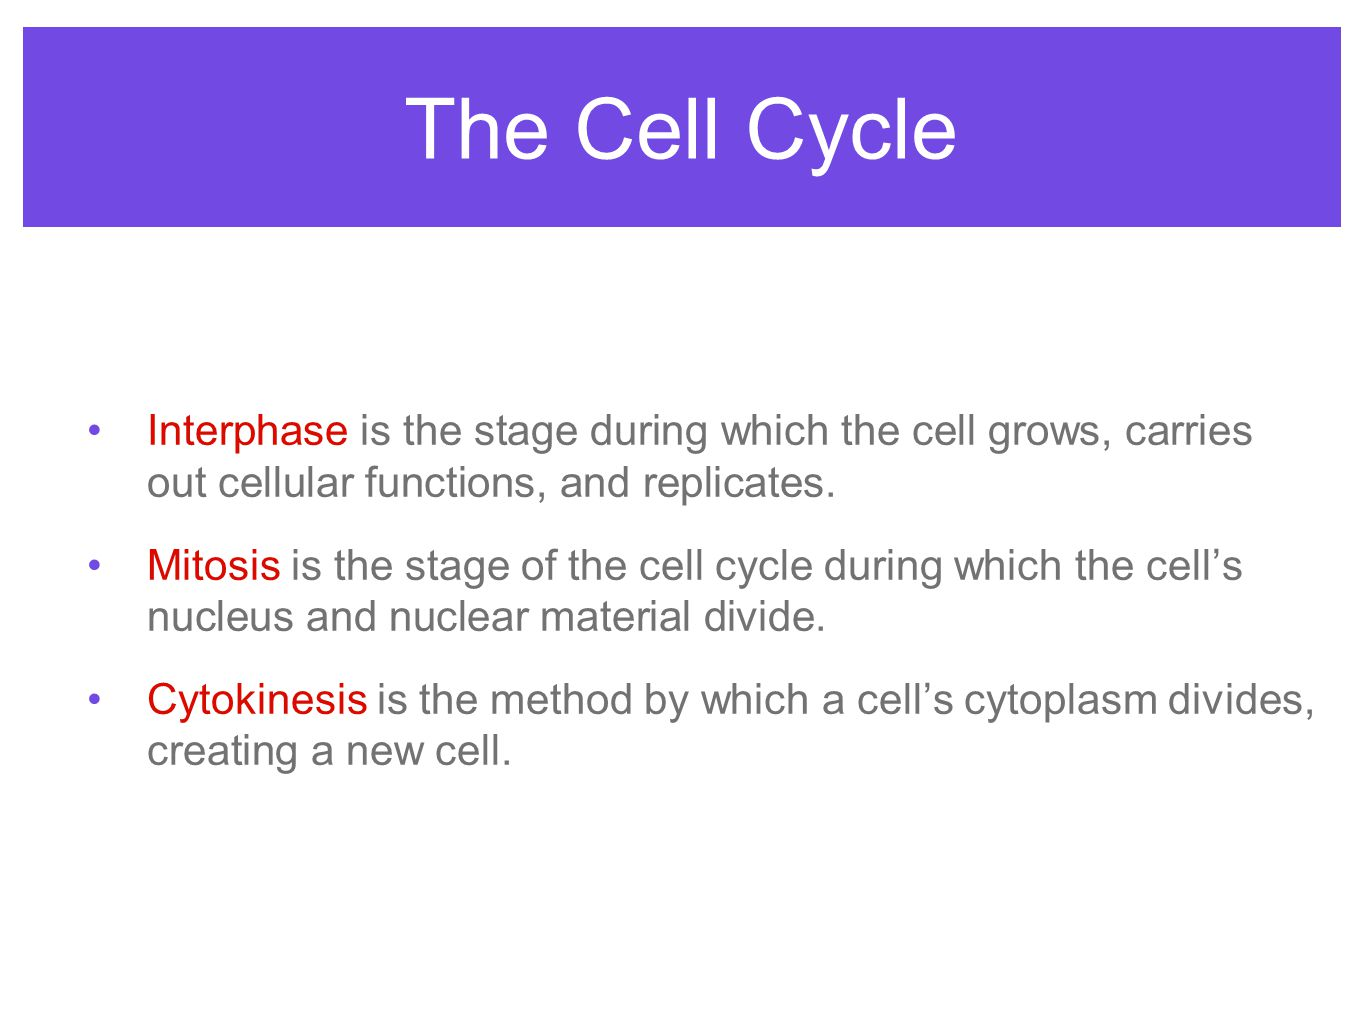 worksheet Cellular Transport And The Cell Cycle Worksheet cellular reproduction ppt video online download the cell cycle interphase is stage during which grows carries out cellular